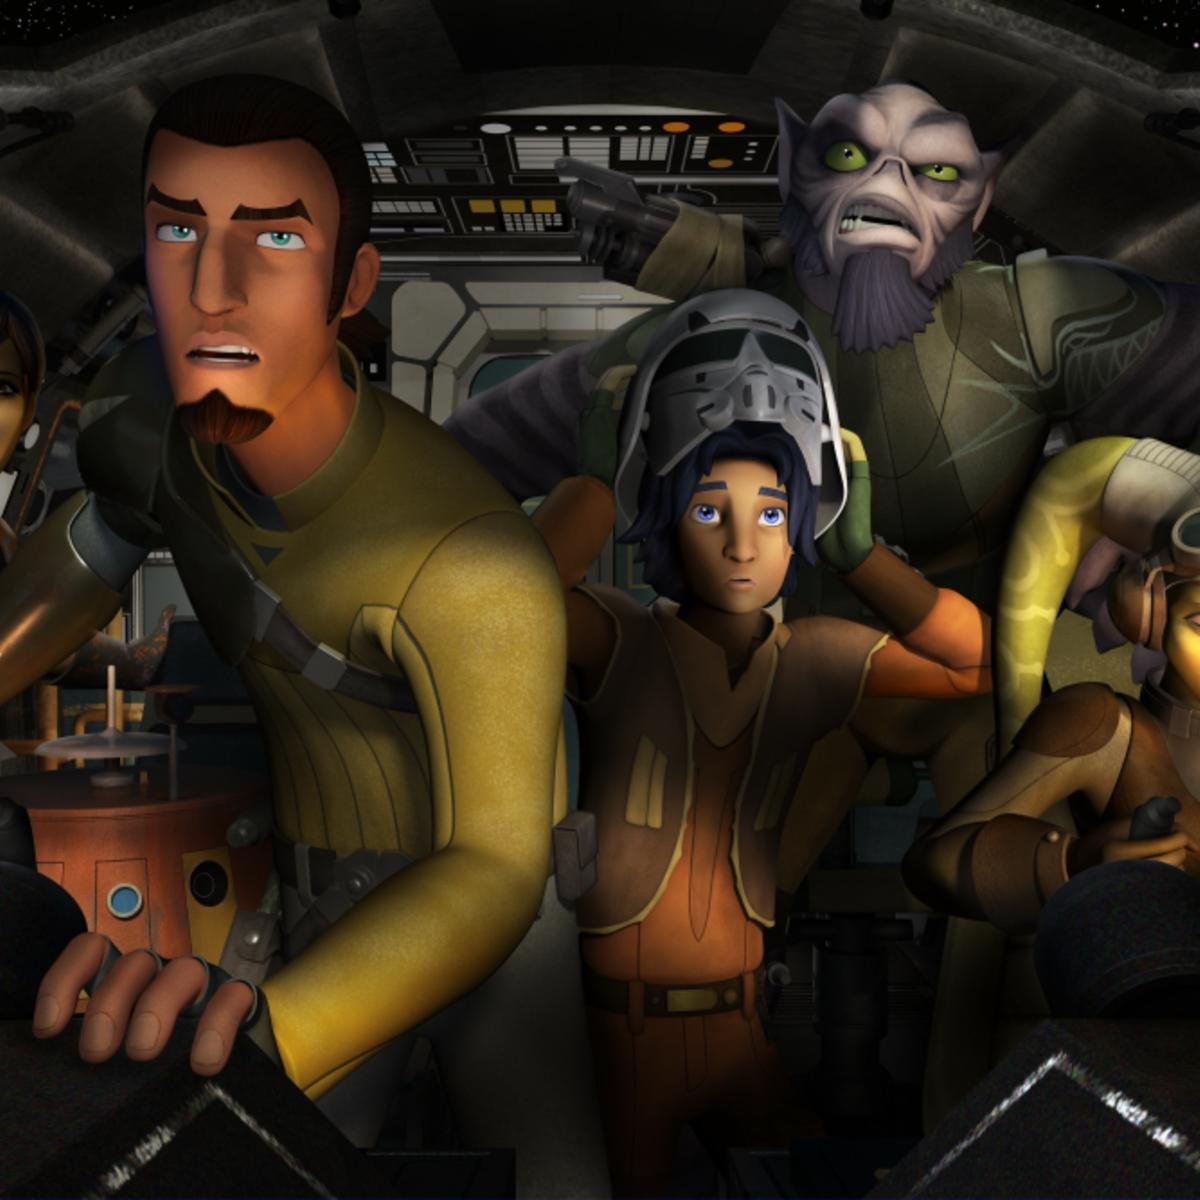 Star-Wars-Rebels-Kanan-Crew_0.png